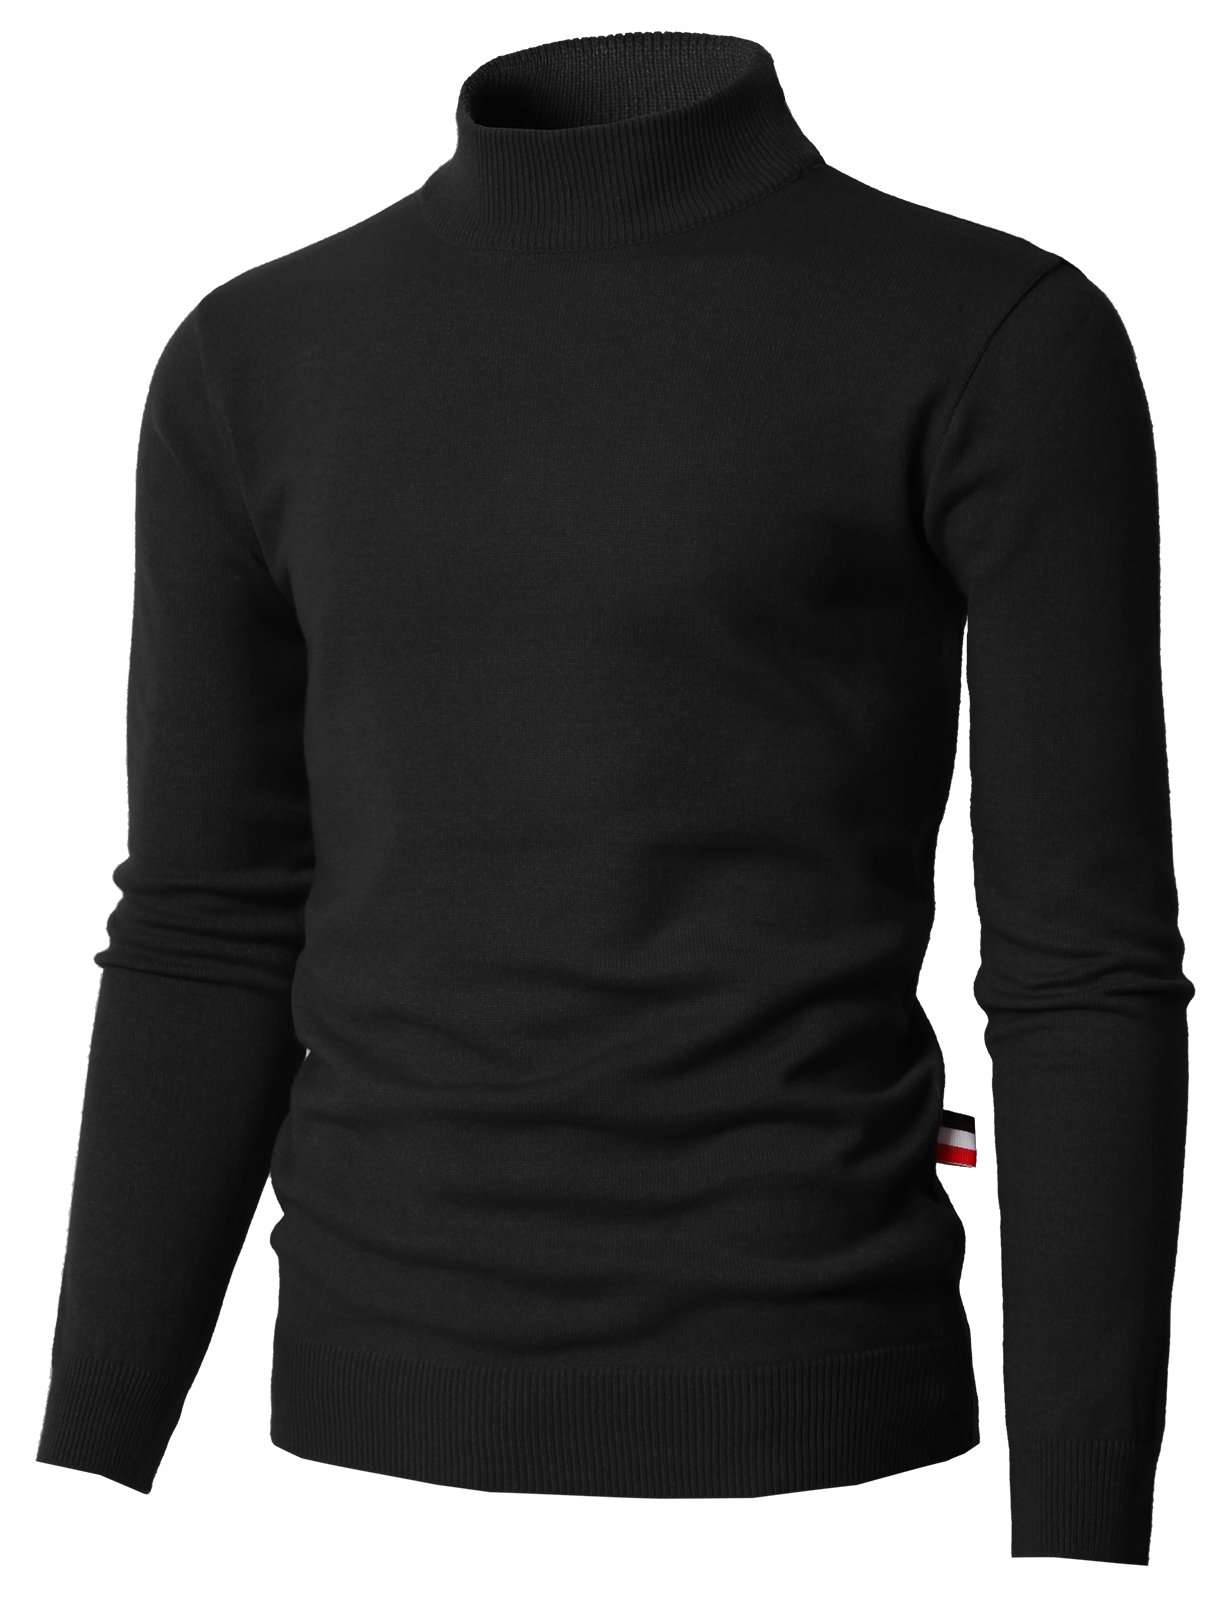 H2H Mens Premium 100% Cashmere Mock Neck Knitted Thermal Sweater Black US M/Asia L (KMOSWL0201)